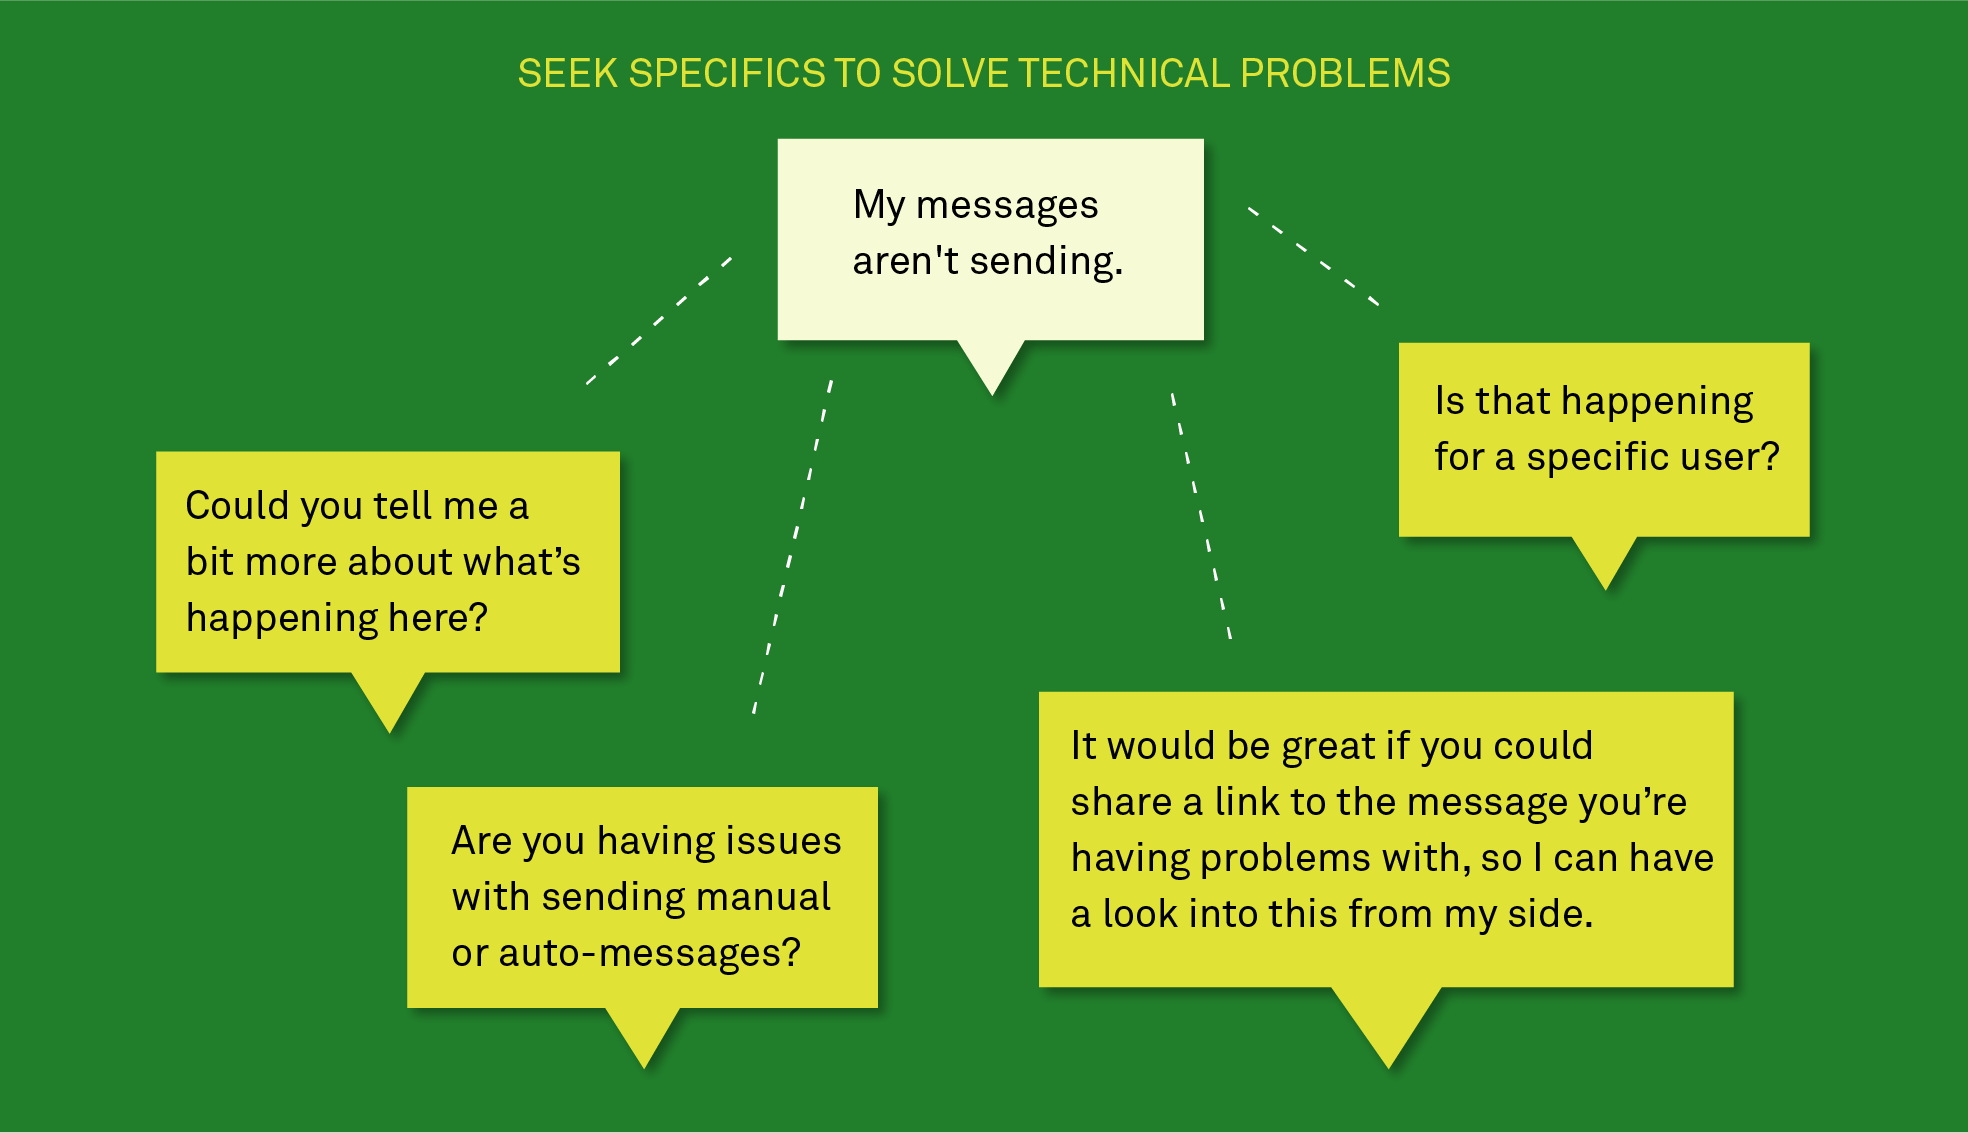 Seek specifics to solve technical problems